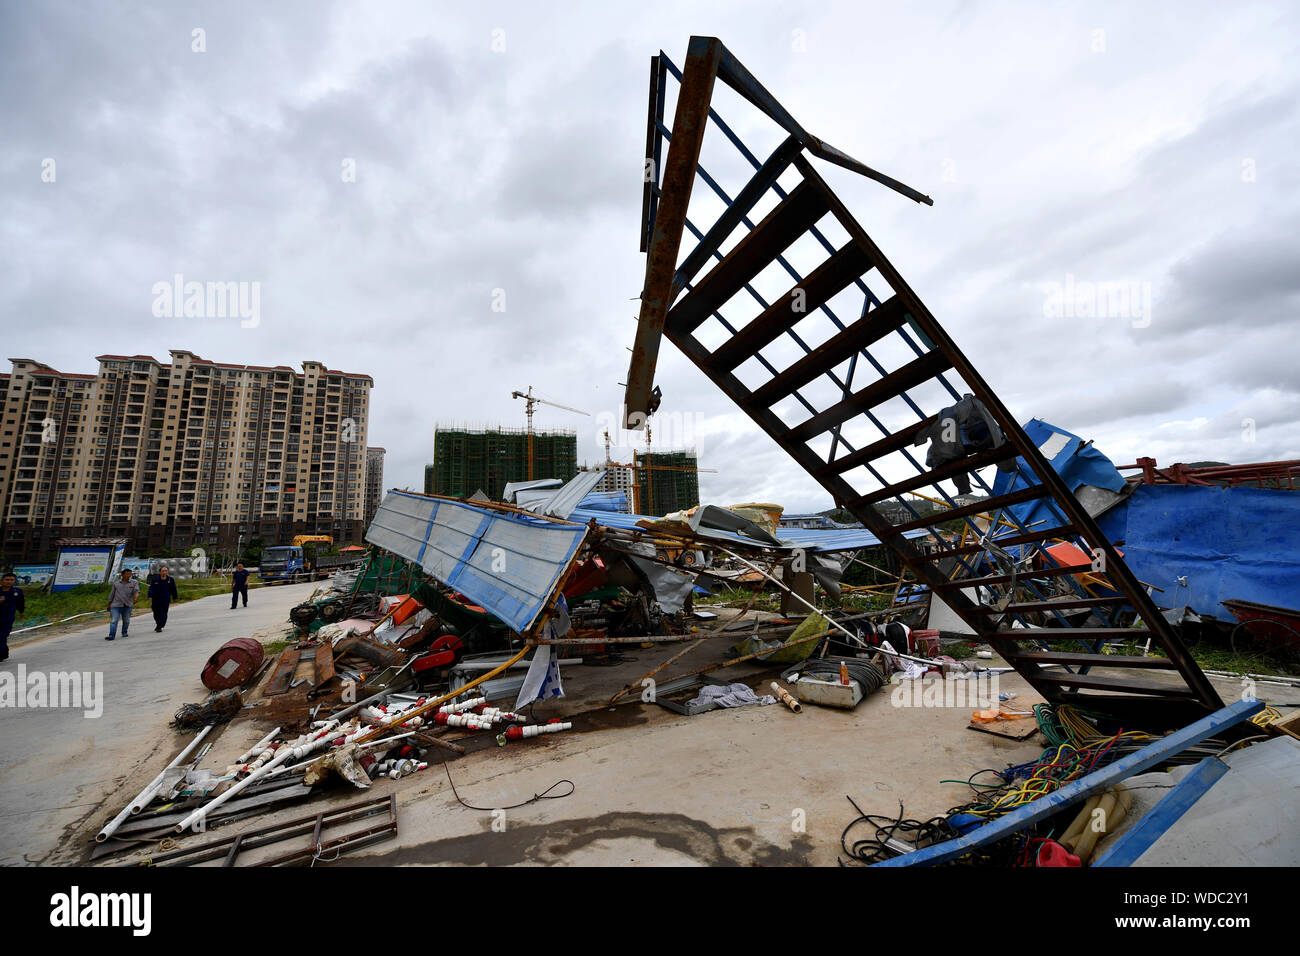 Danzhou. 29th Aug, 2019. Photo taken on Aug. 29, 2019 shows the damaged site after a tornado ripped across Nada Township of Danzhou City, south China's Hainan Province. At least eight people died and one was seriously injured as a tornado lashed a township in China's southernmost island province of Hainan early Thursday morning, local authorities said. Credit: Guo Cheng/Xinhua/Alamy Live News Stock Photo